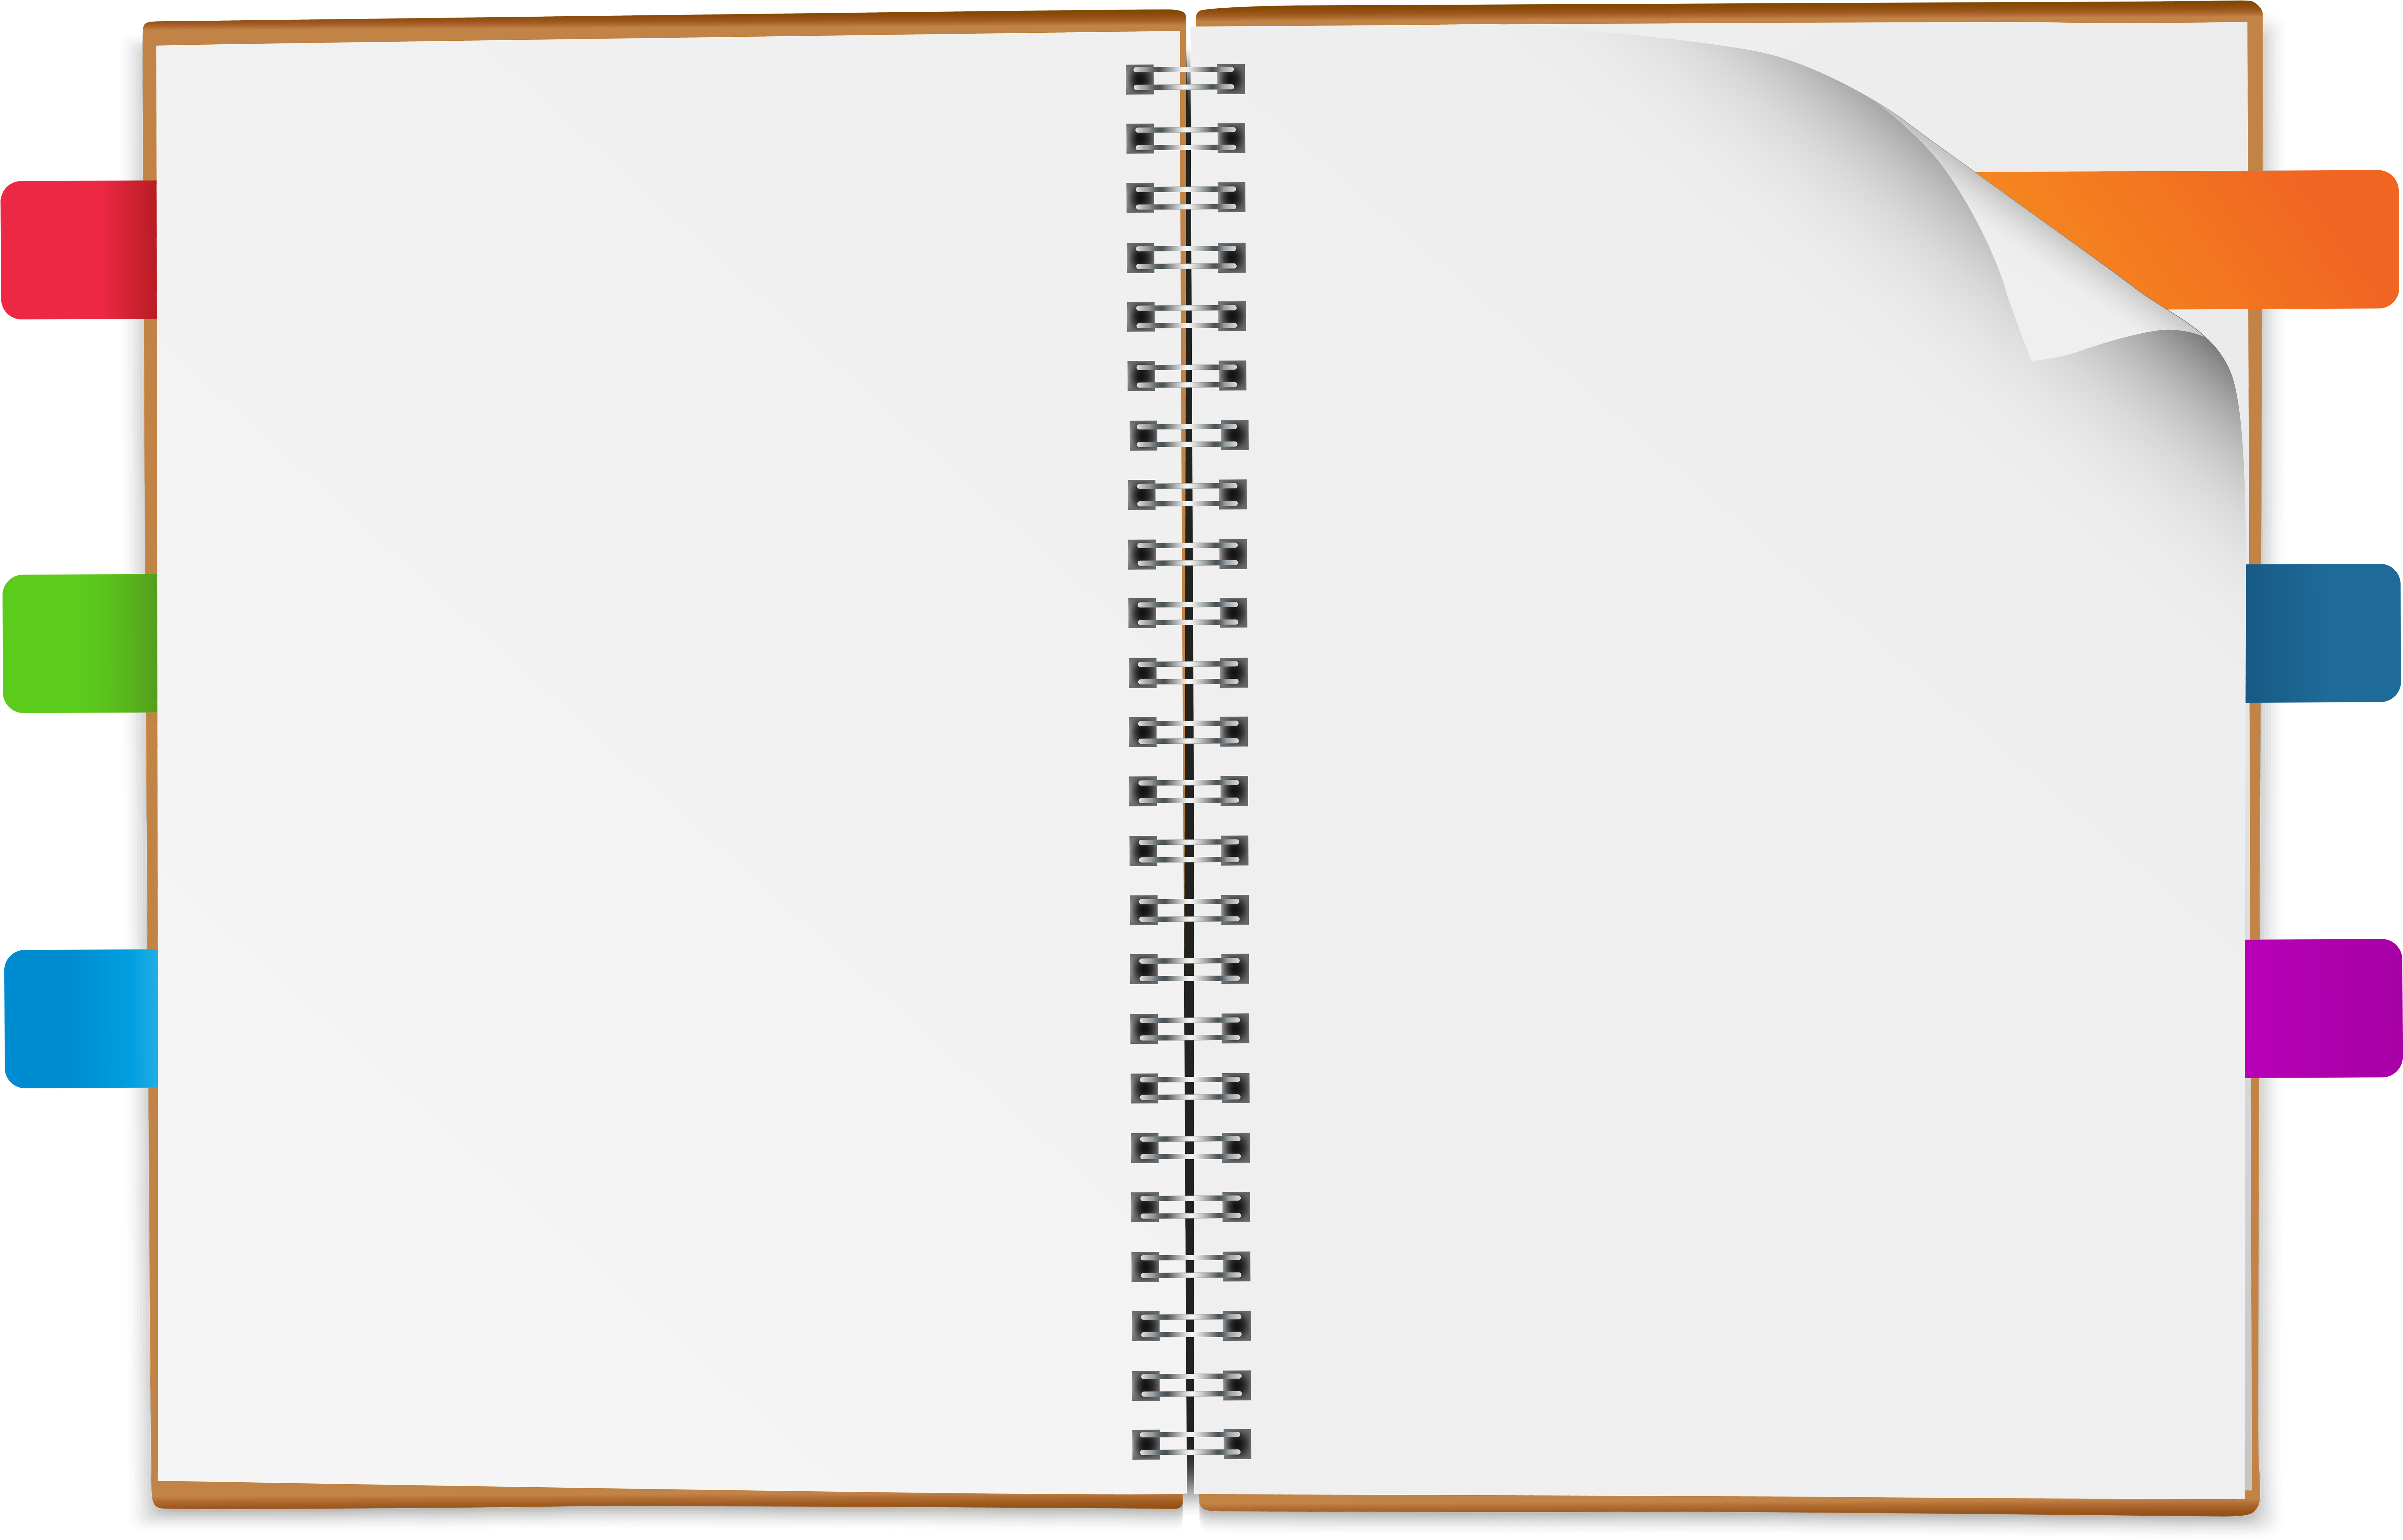 Download Notebook Clipart Full Size Png Image Pngkit Composition notebook clipart download includes: pngkit